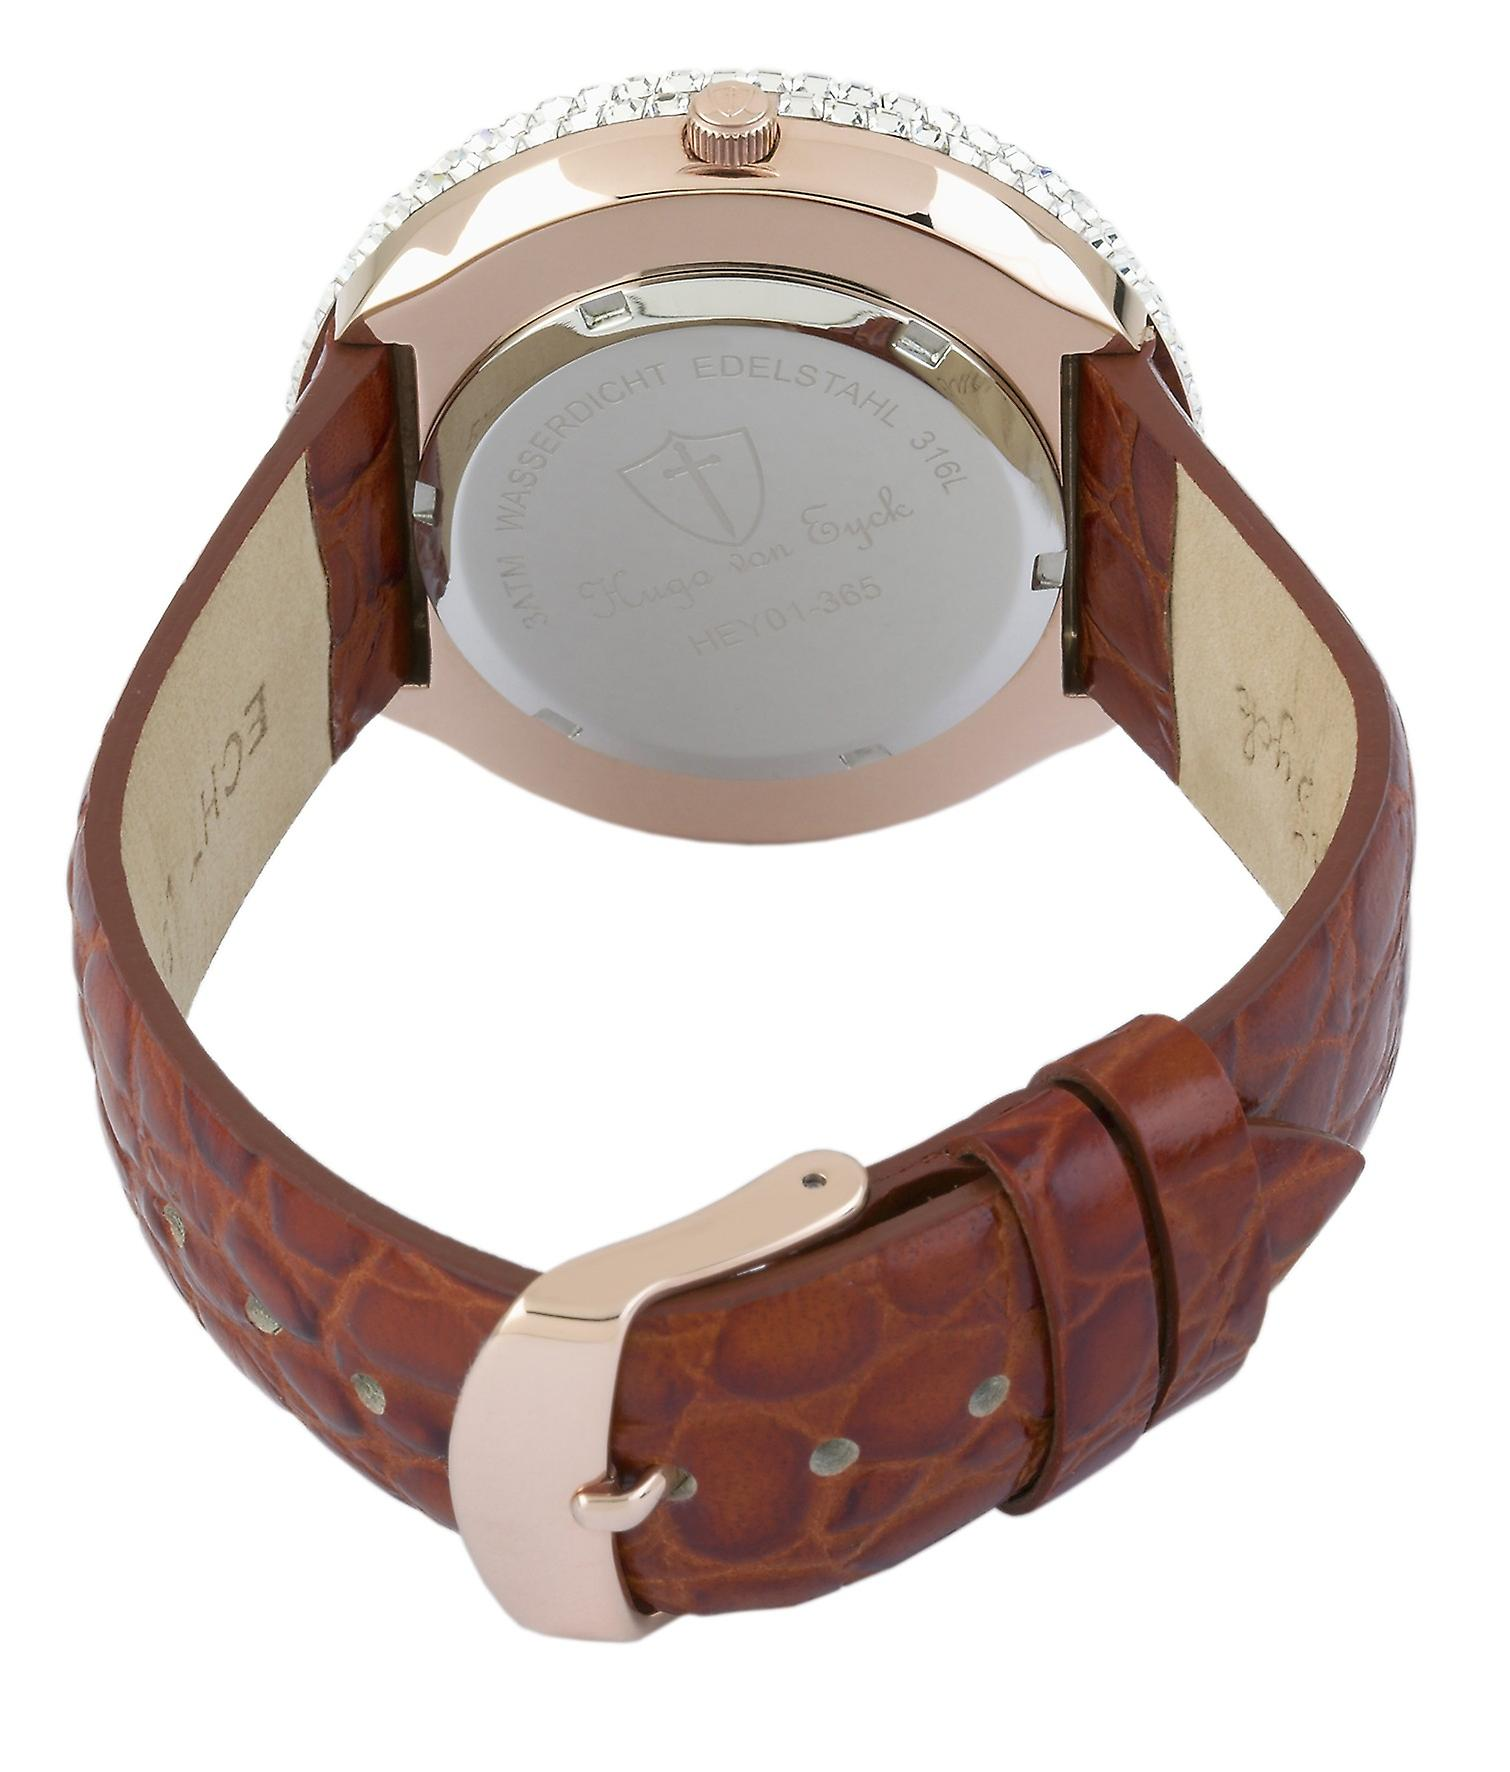 Hugo von Eyck Ladies quartz watch HEY01-365